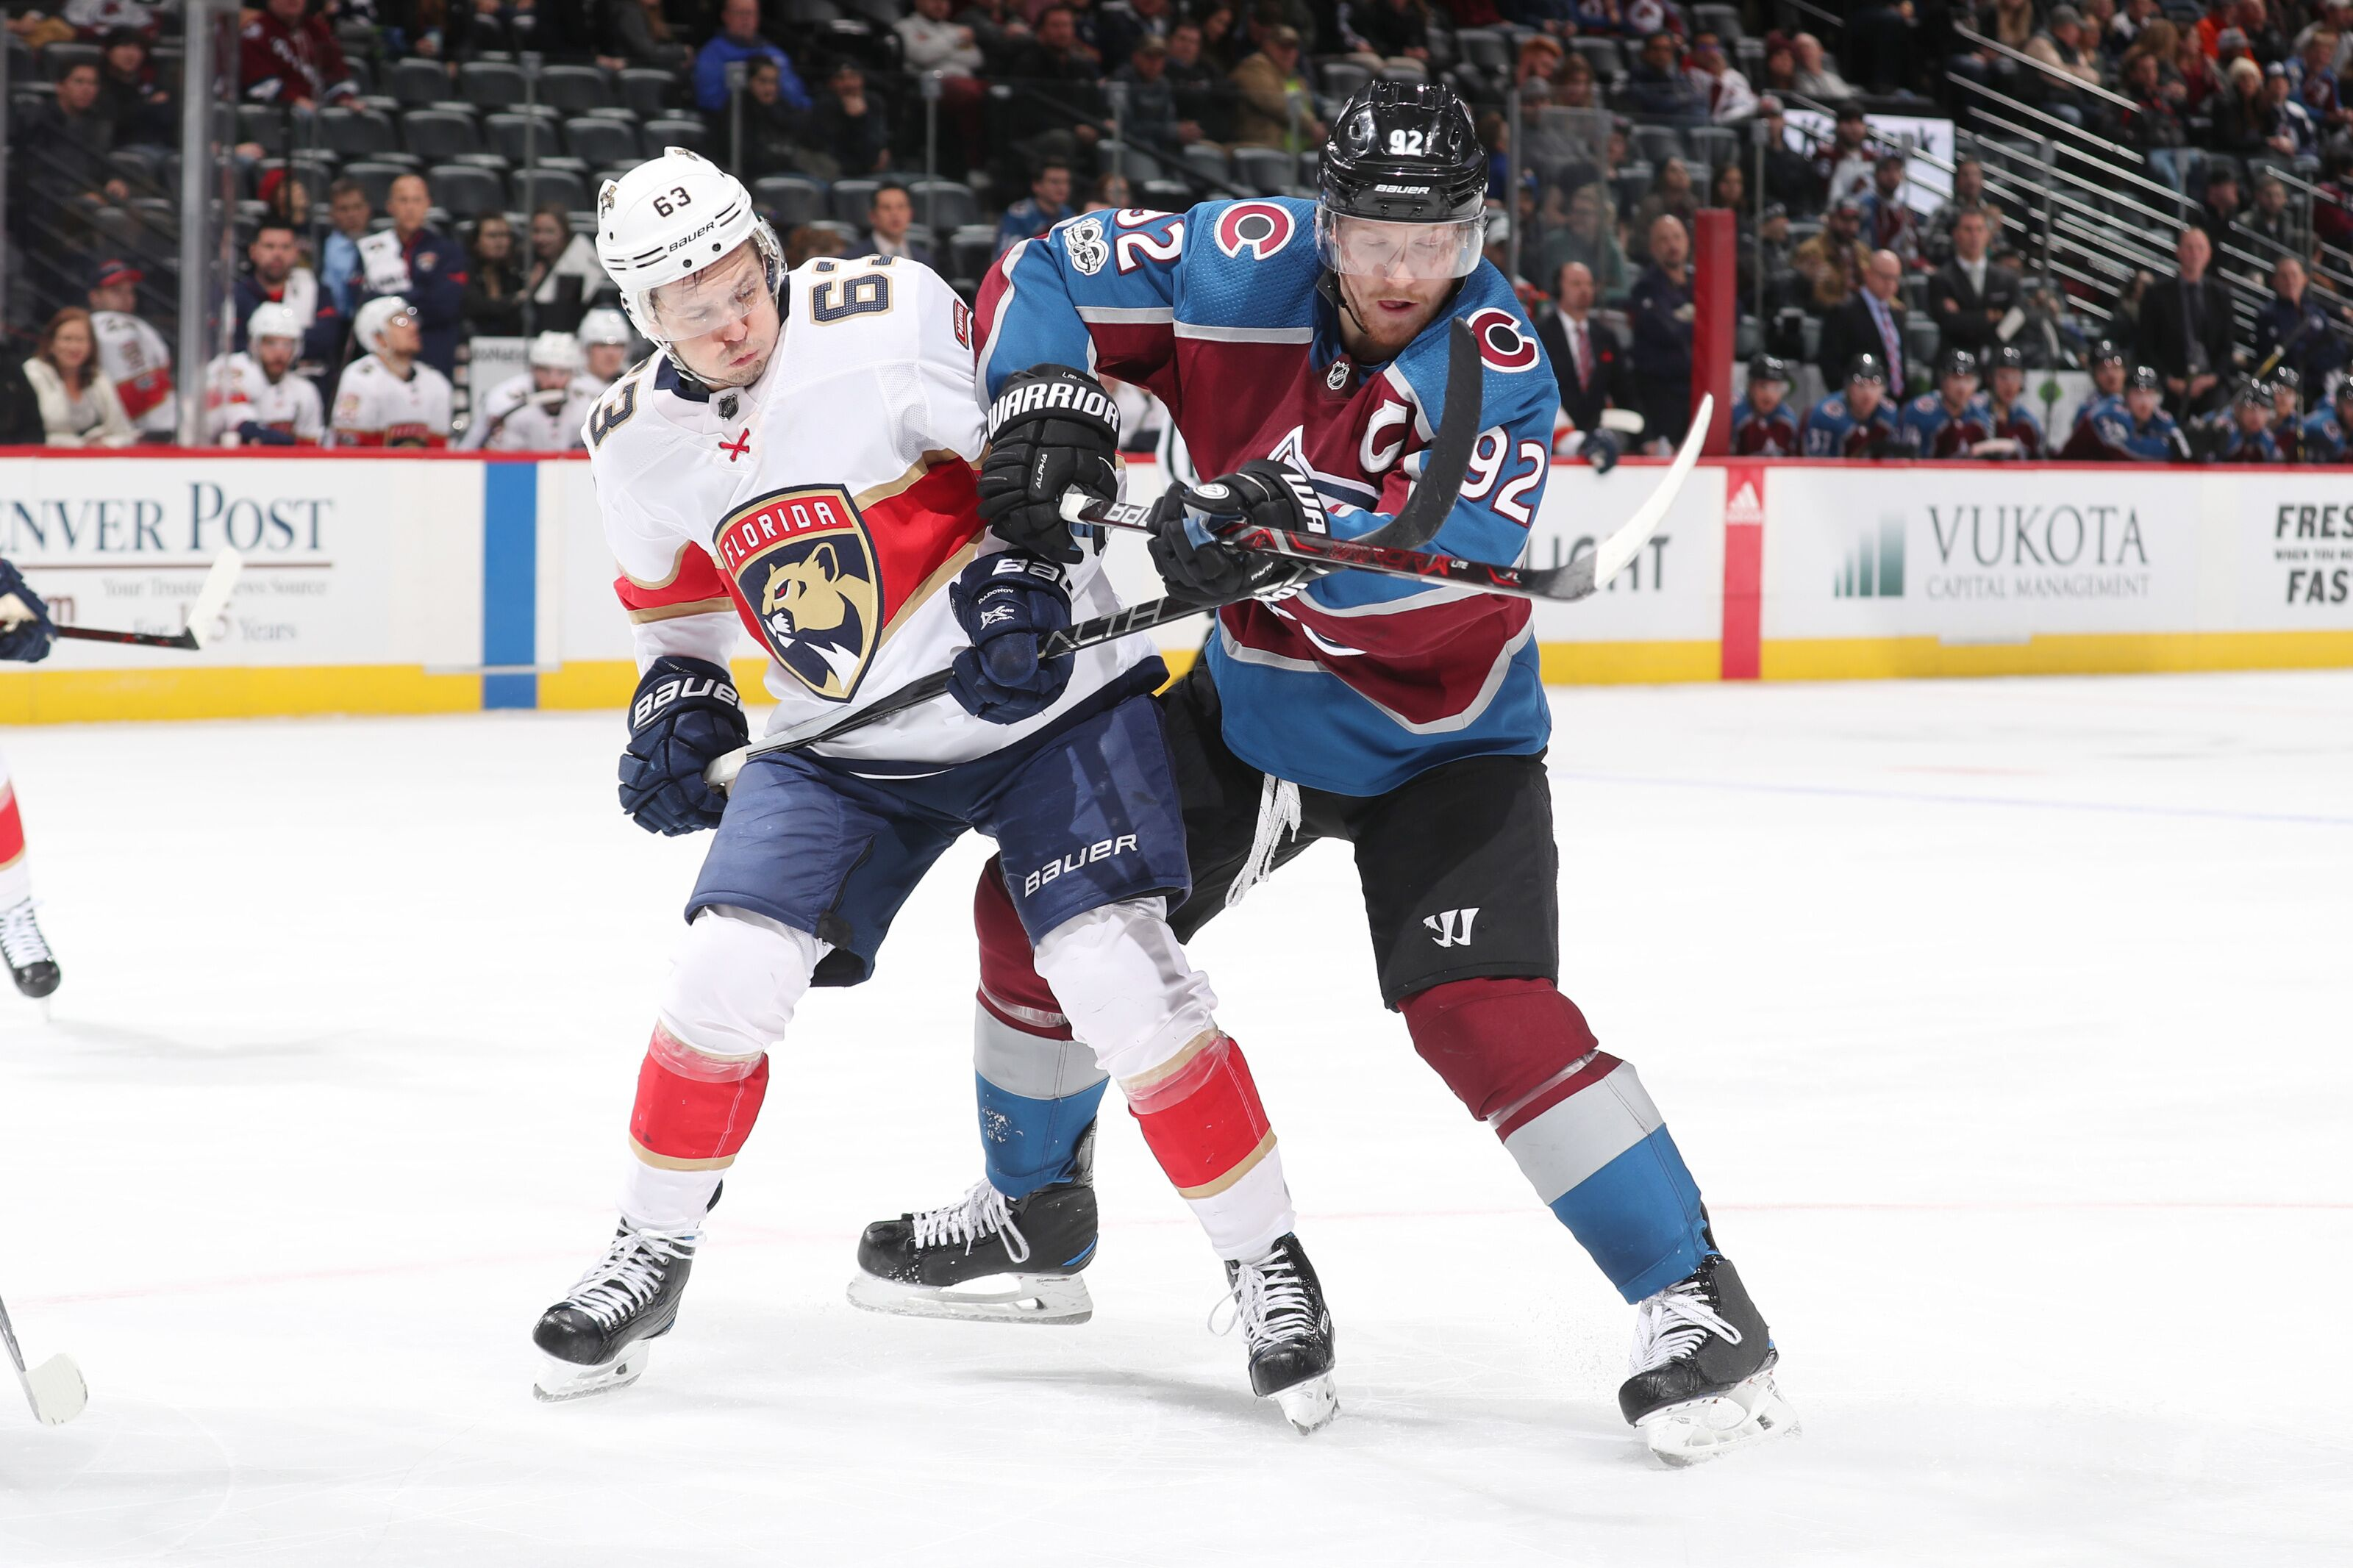 Florida Panthers Faceoff Against Avs With Hopes Of Two Straight Wins